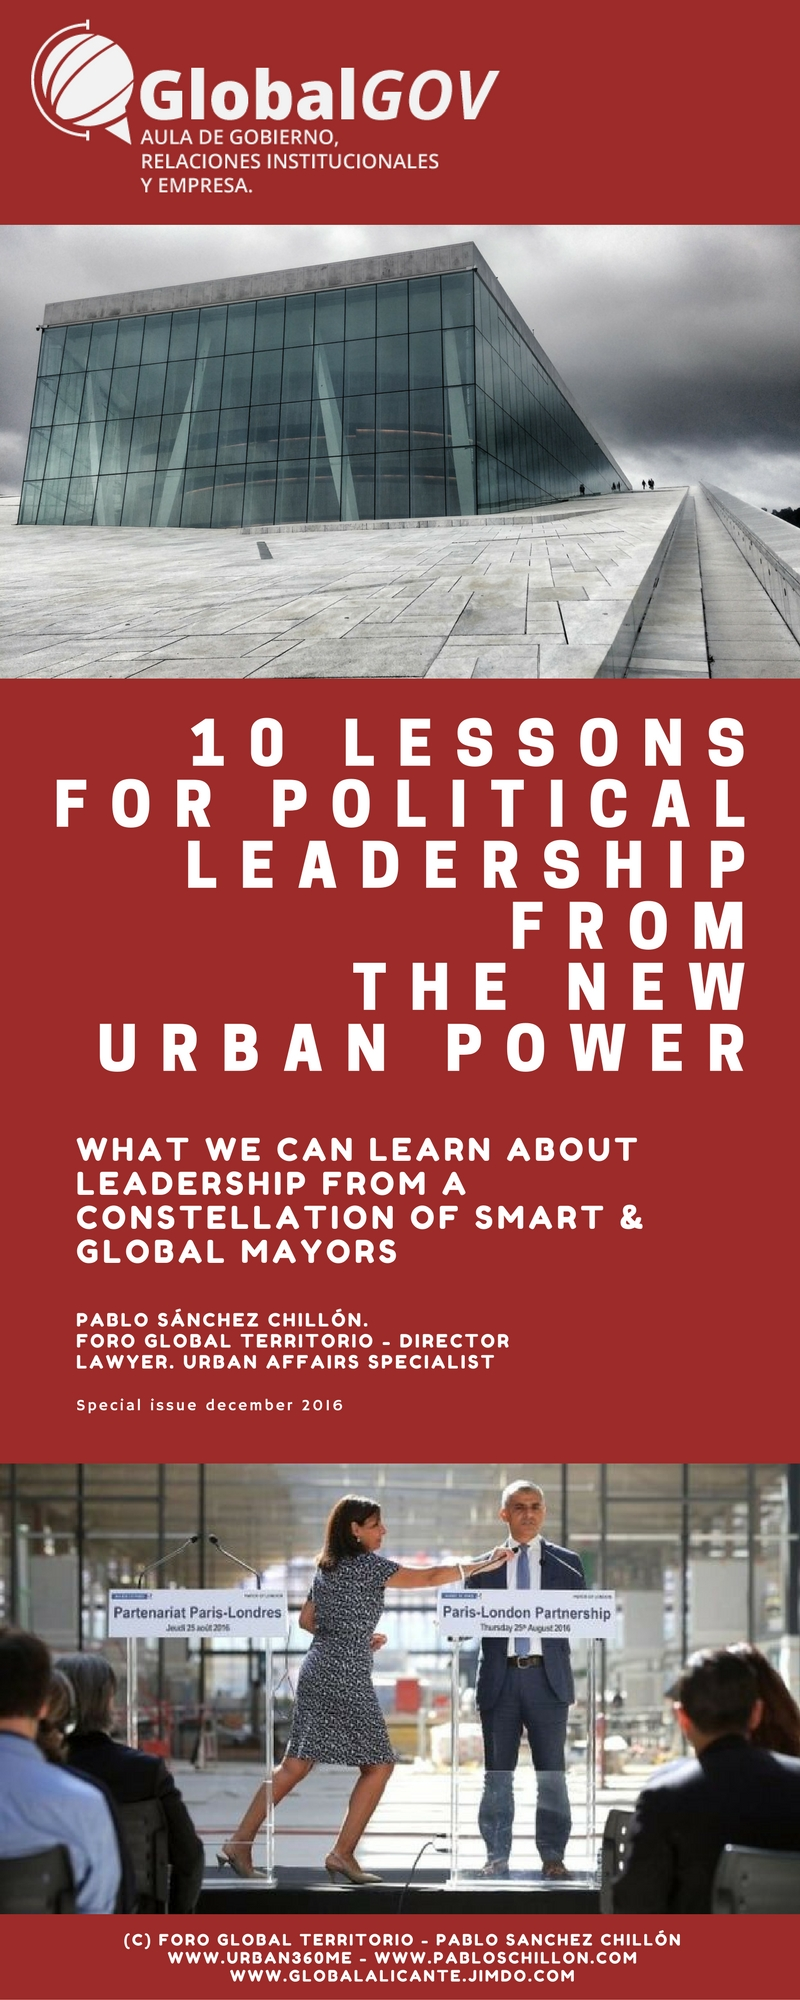 CUADERNO GLOBALGOV Nº 1: DICIEMBRE 2016 / 10 LESSONS FOR POLITICAL LEADERSHIP FROM THE NEW URBAN POWER